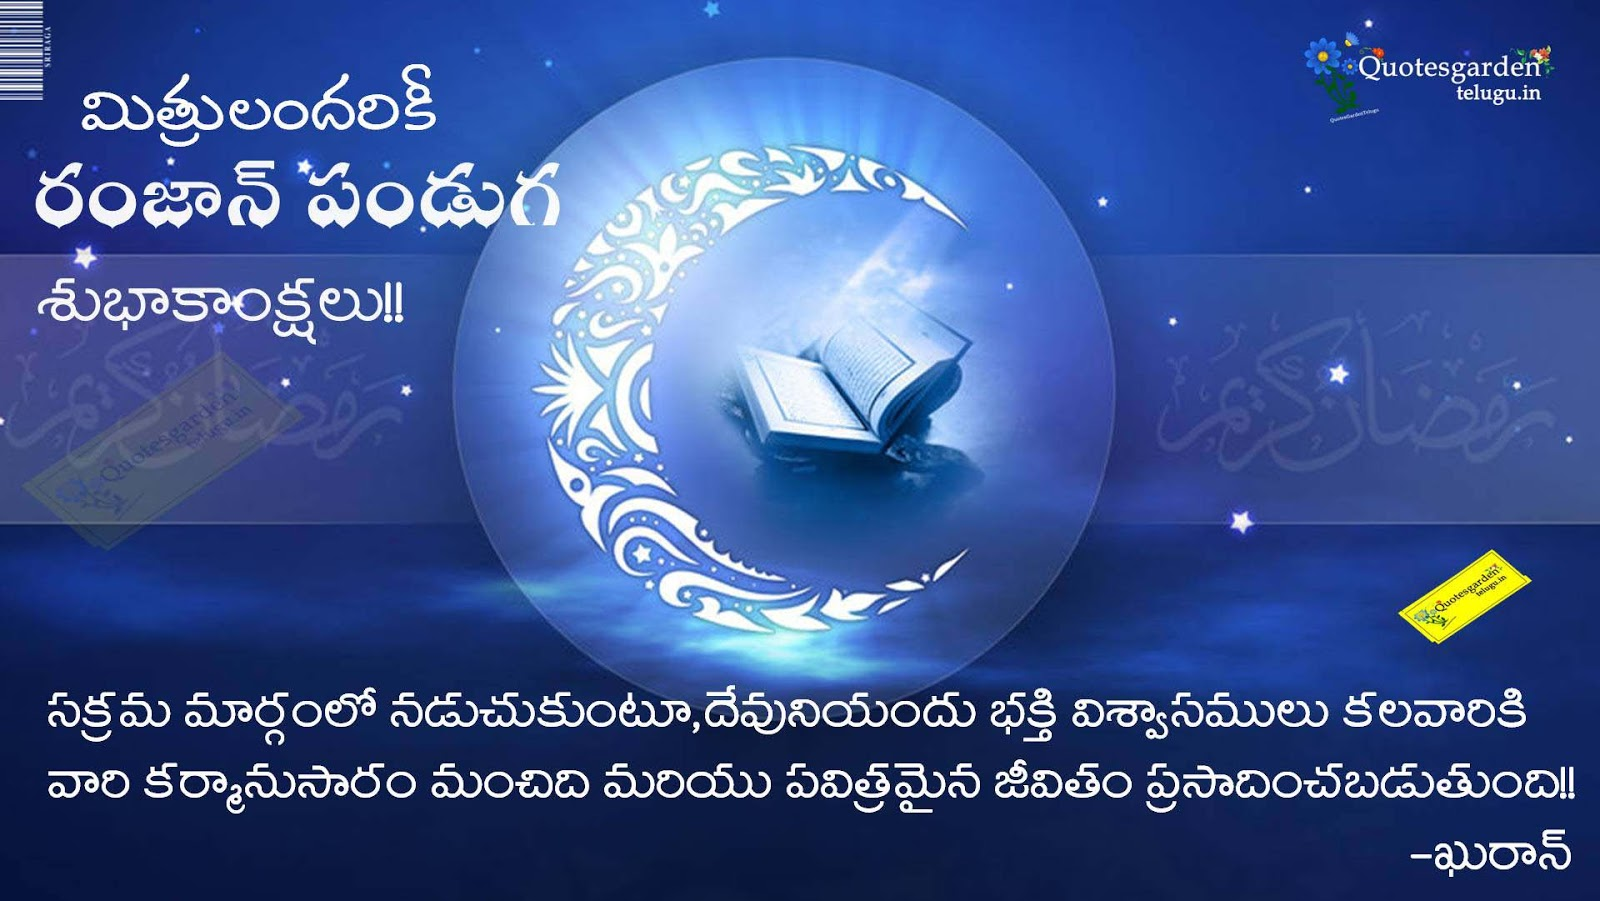 Telugu ramadan greetings wishes pictures images wallpapers khuran telugu ramadan greetings wishes pictures images wallpapers khuran readings quotes messages wallpapers kristyandbryce Images